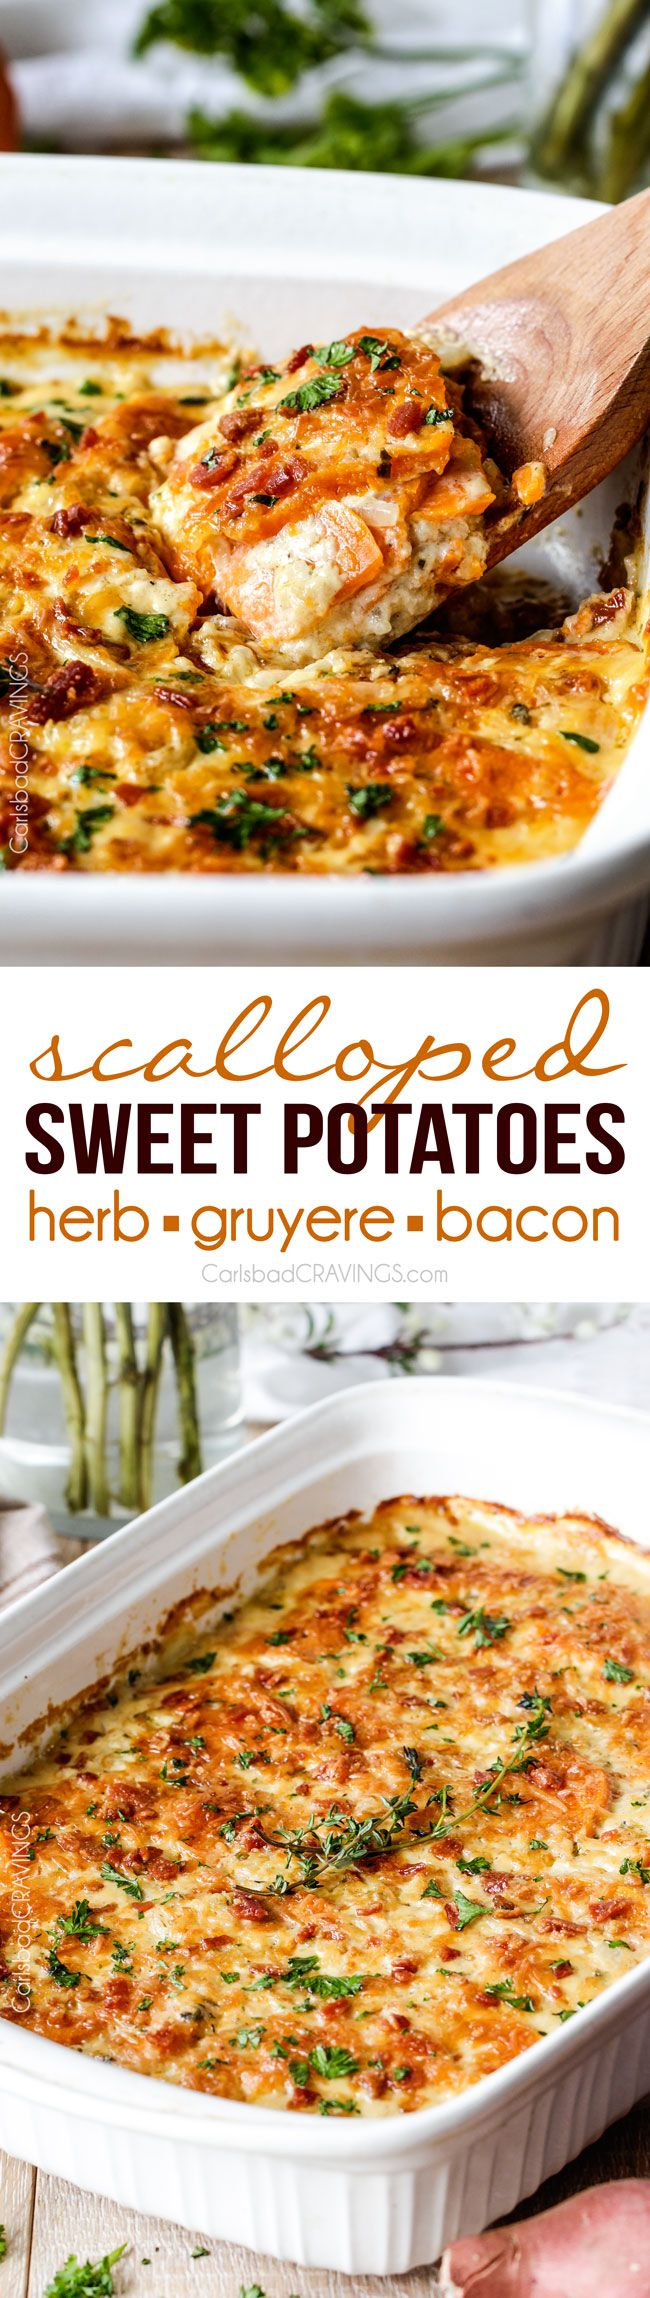 Herb Scalloped Sweet Potatoes with Bacon and Gruyere | Carlsbad Cravings | Looking for the BEST scalloped sweet potatoes ever EVER?! Fresh herbs simmered in cream poured over layers of potatoes, bacon and onions topped with Gruyere cheese. Perfect for Thanksgiving, company or every day!